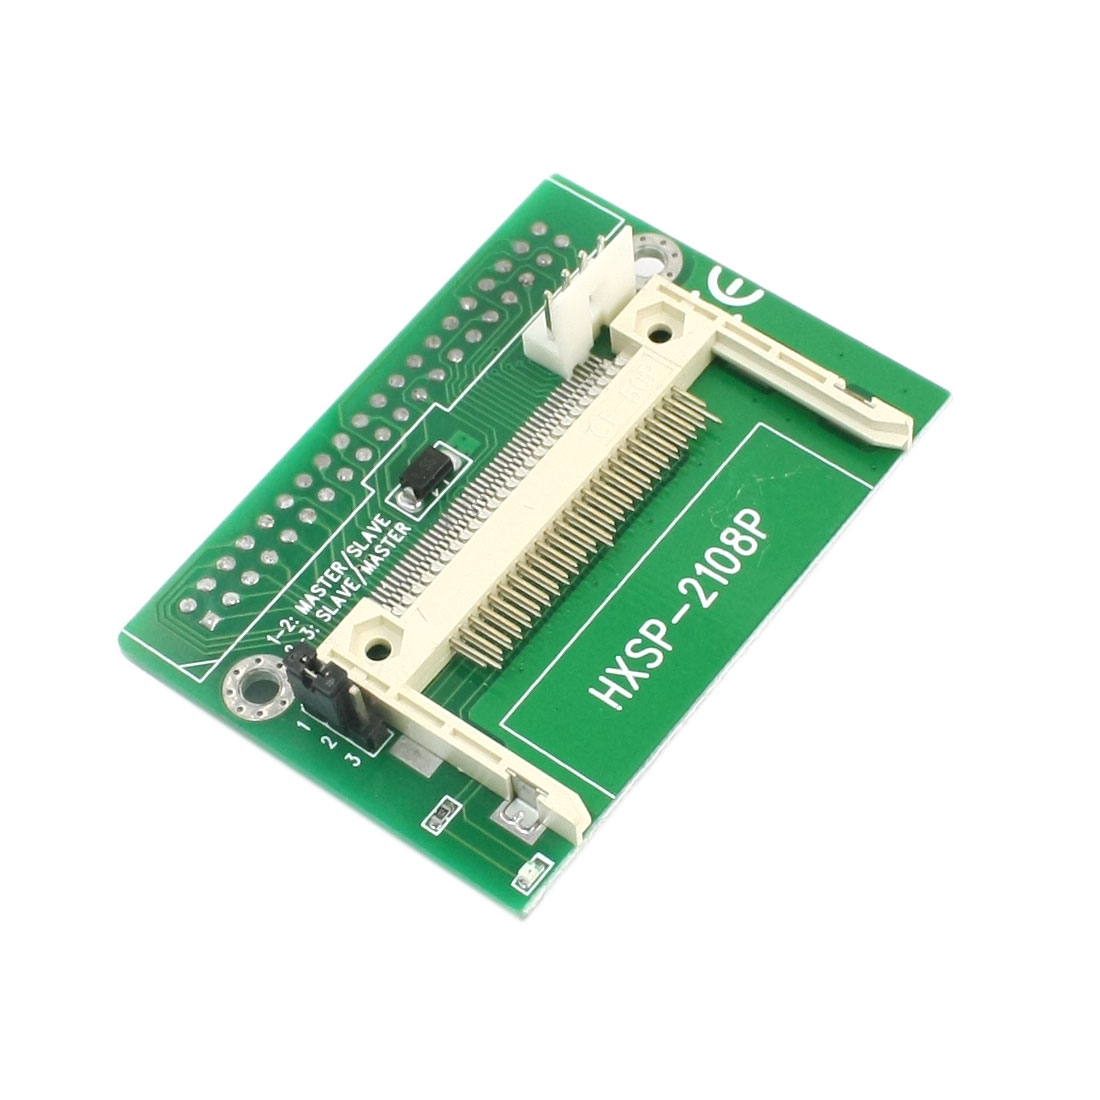 HXSP-2108P Compact Flash CF to 40-Pin 2.5 IDE Computer Electronic Female Hard Disk Drive Adapter Converter